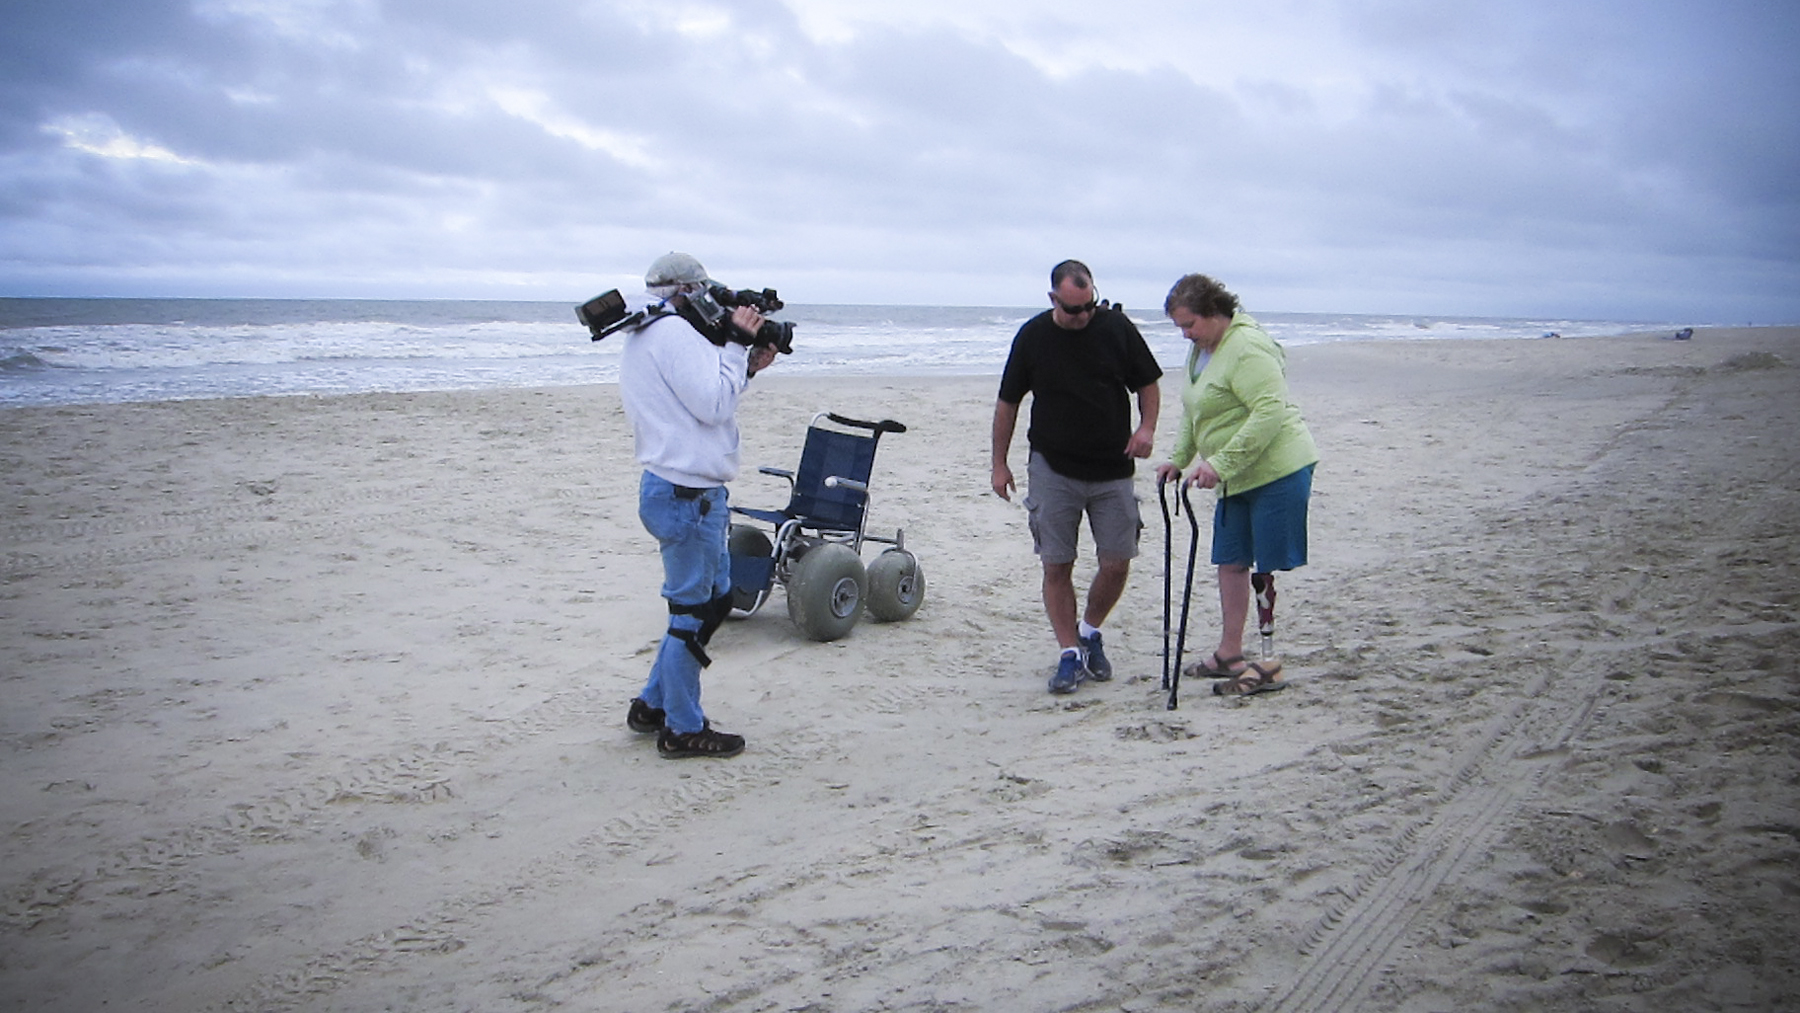 On the beach in North Carolina with Susan Donovan, witnessing her first steps on sand with her new prosthetic leg